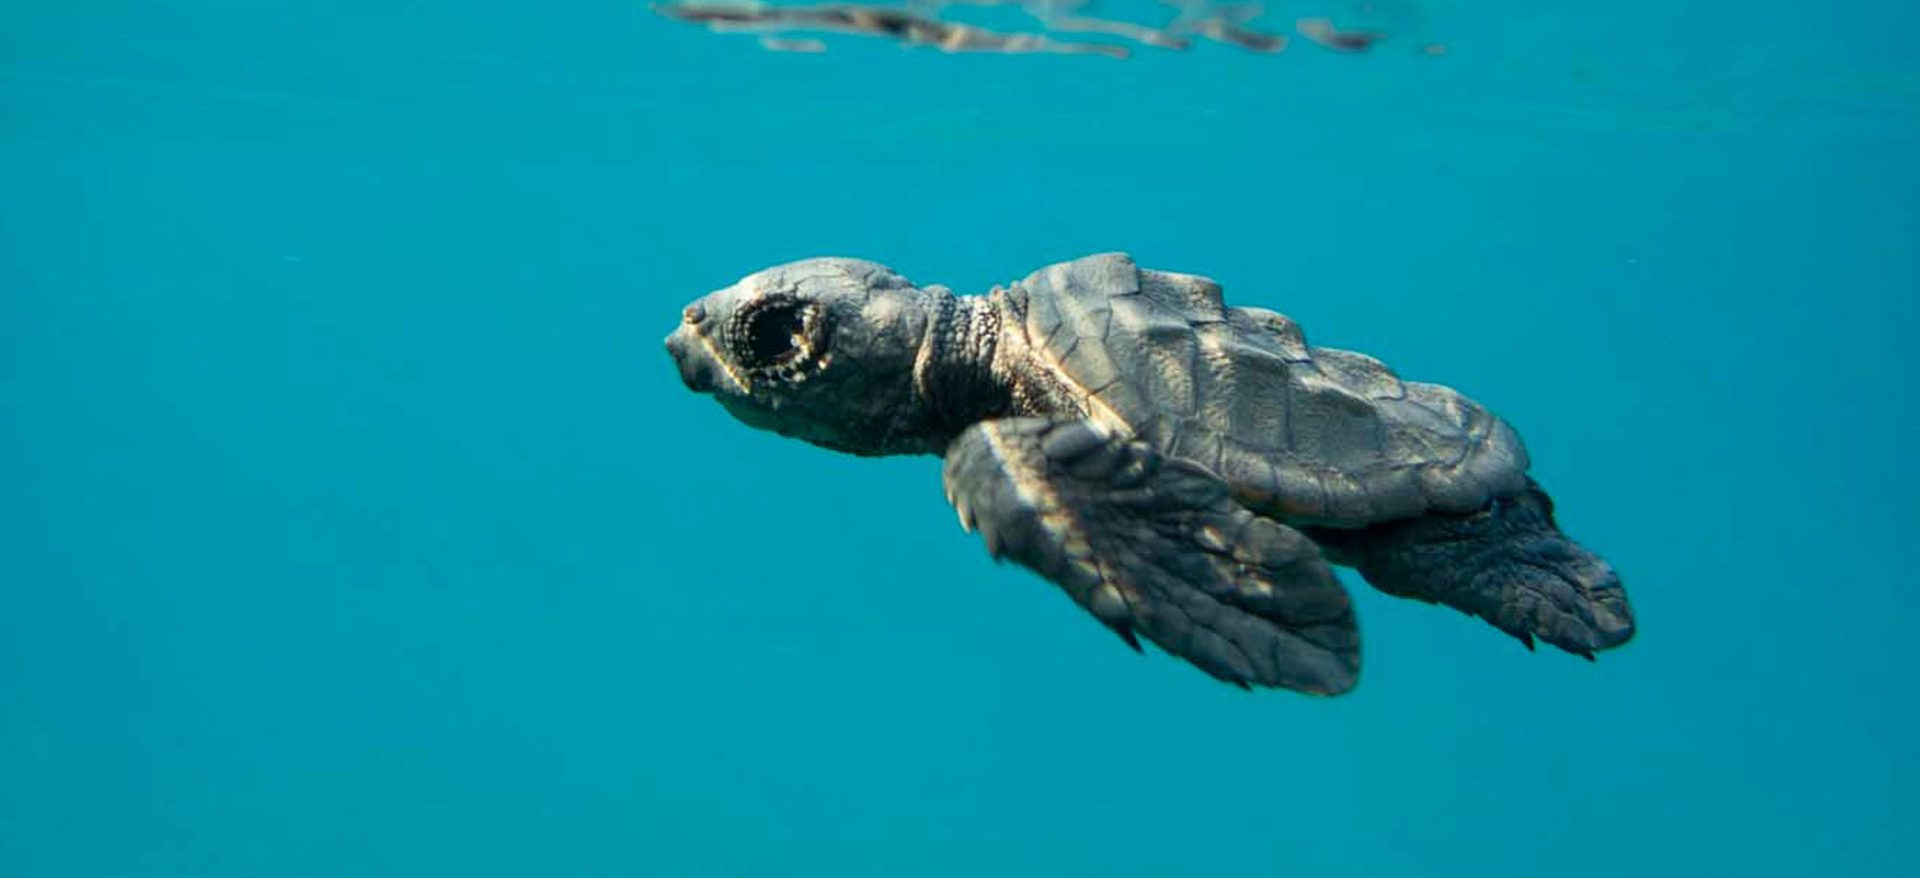 Small Caretta's turtle swimming underwater